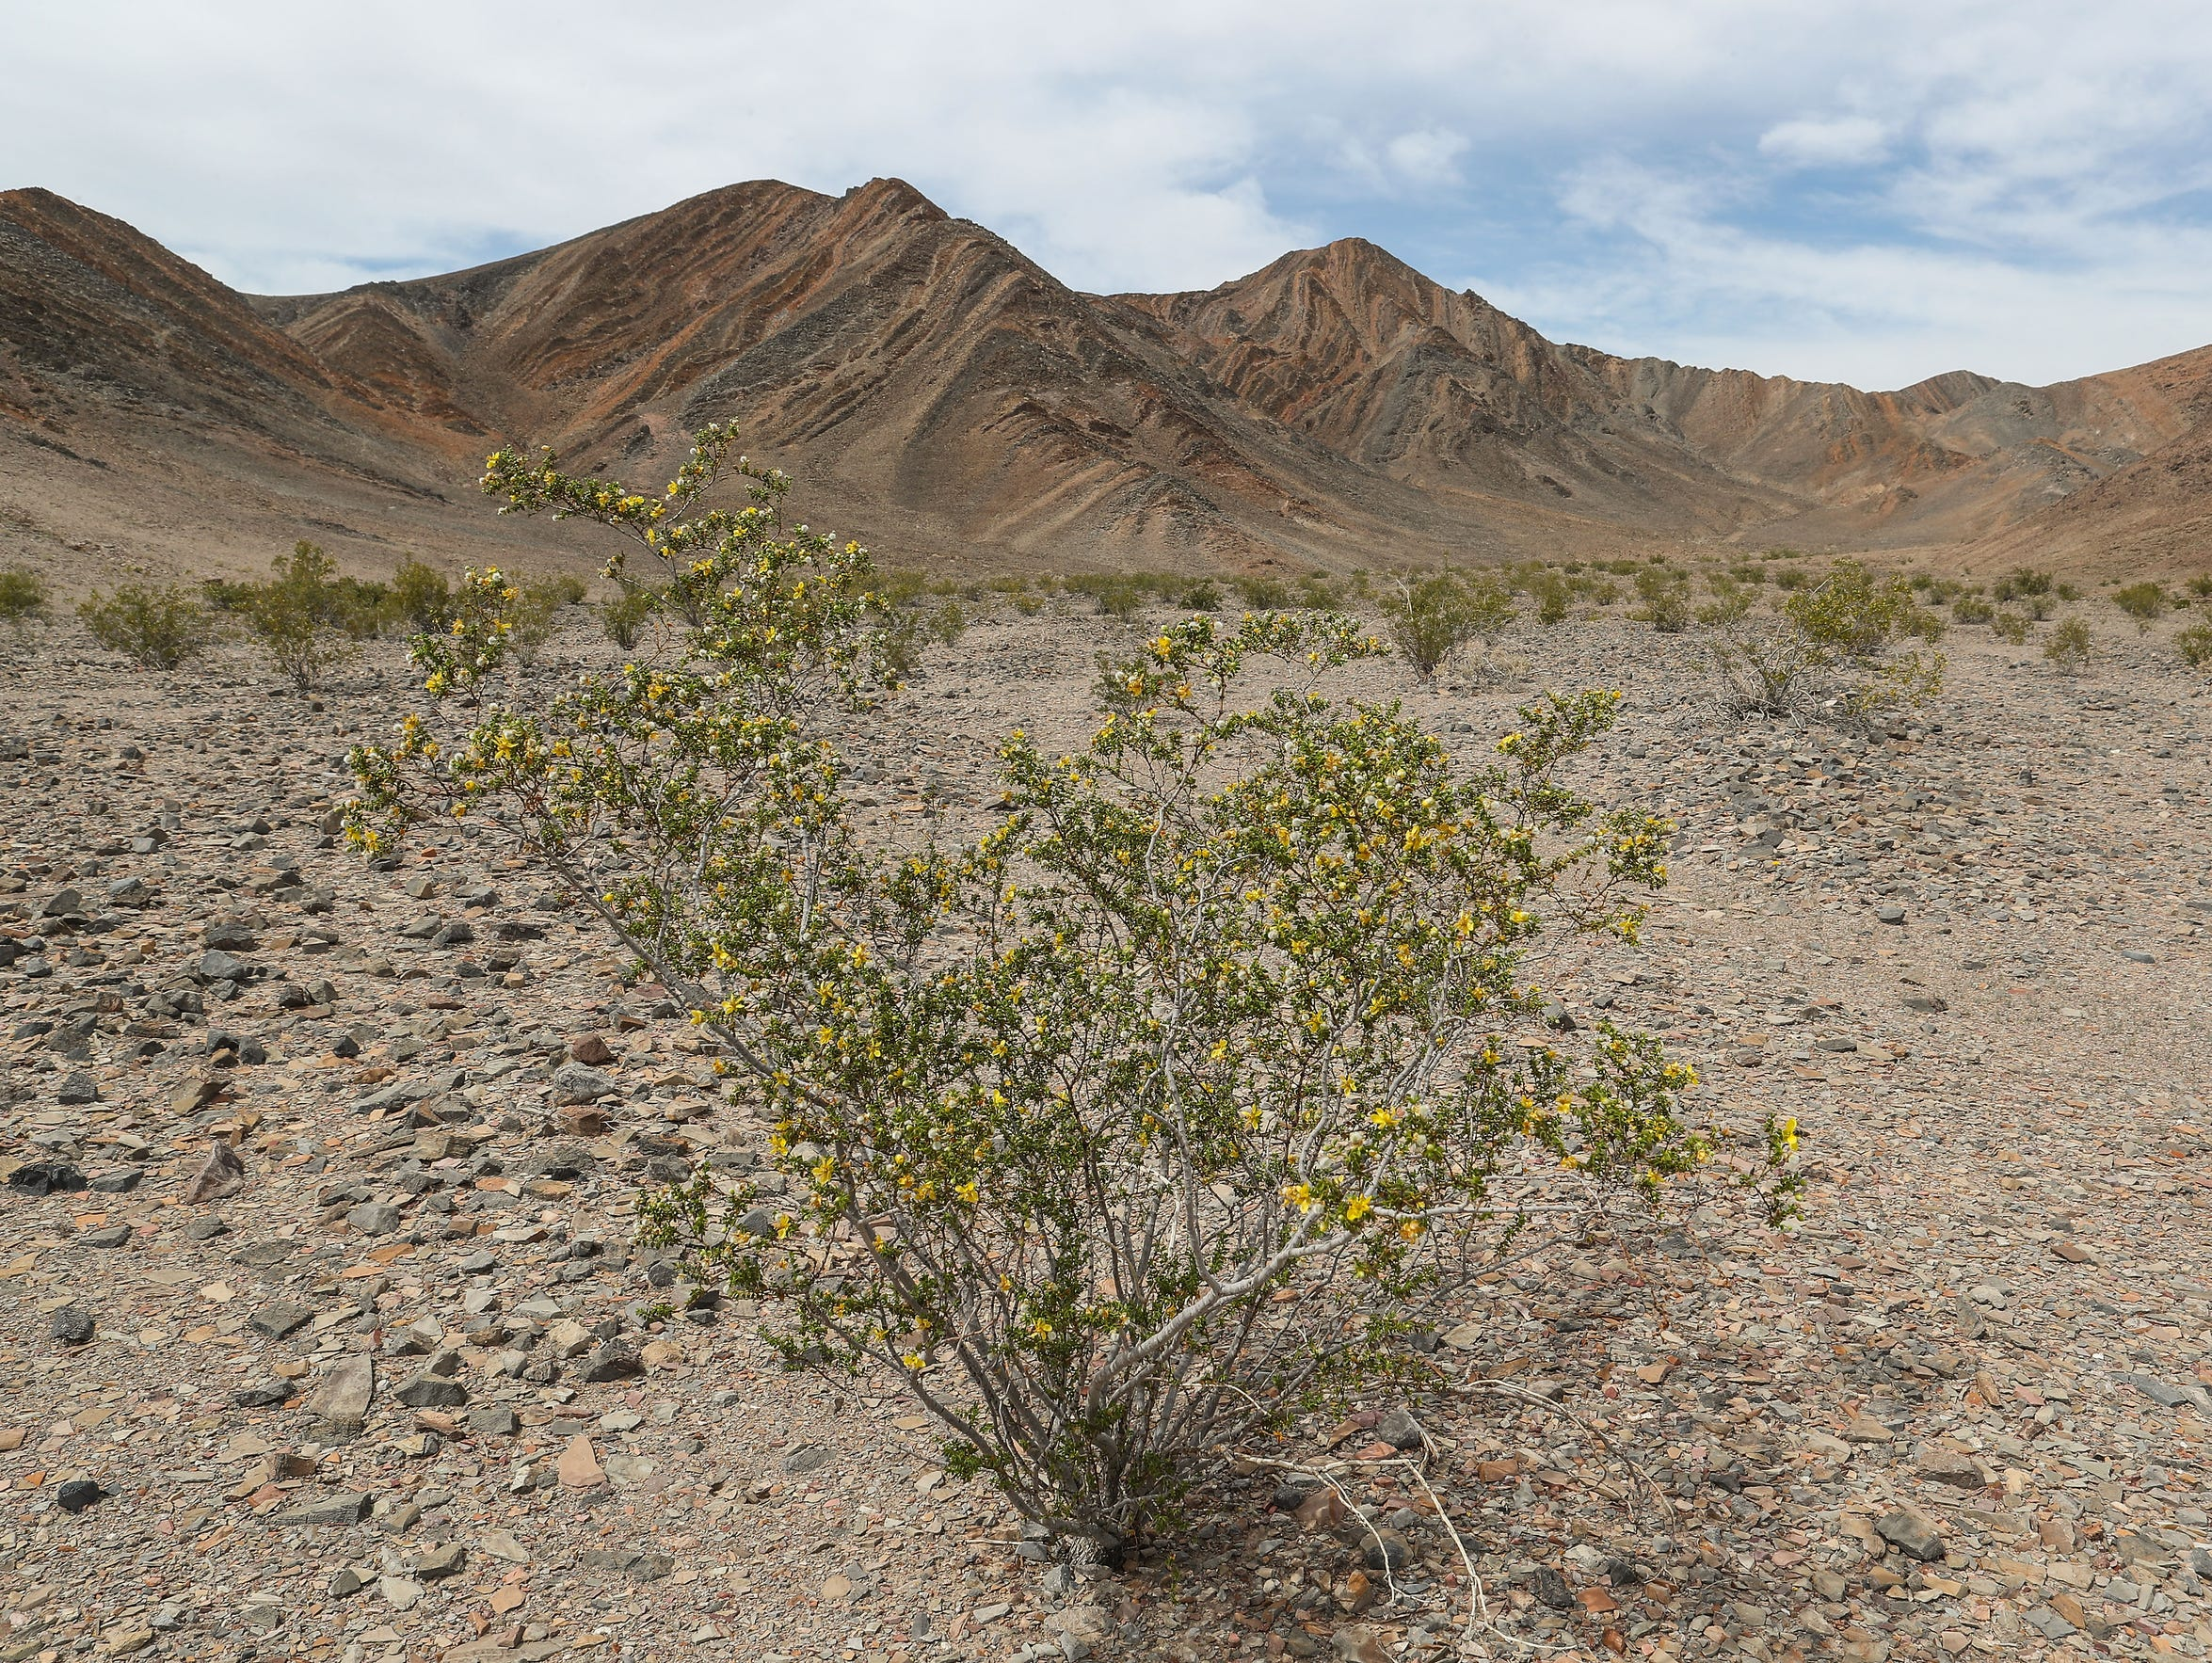 A creosote bush flowers near the Ibex Hills in the Mojave Desert of California.